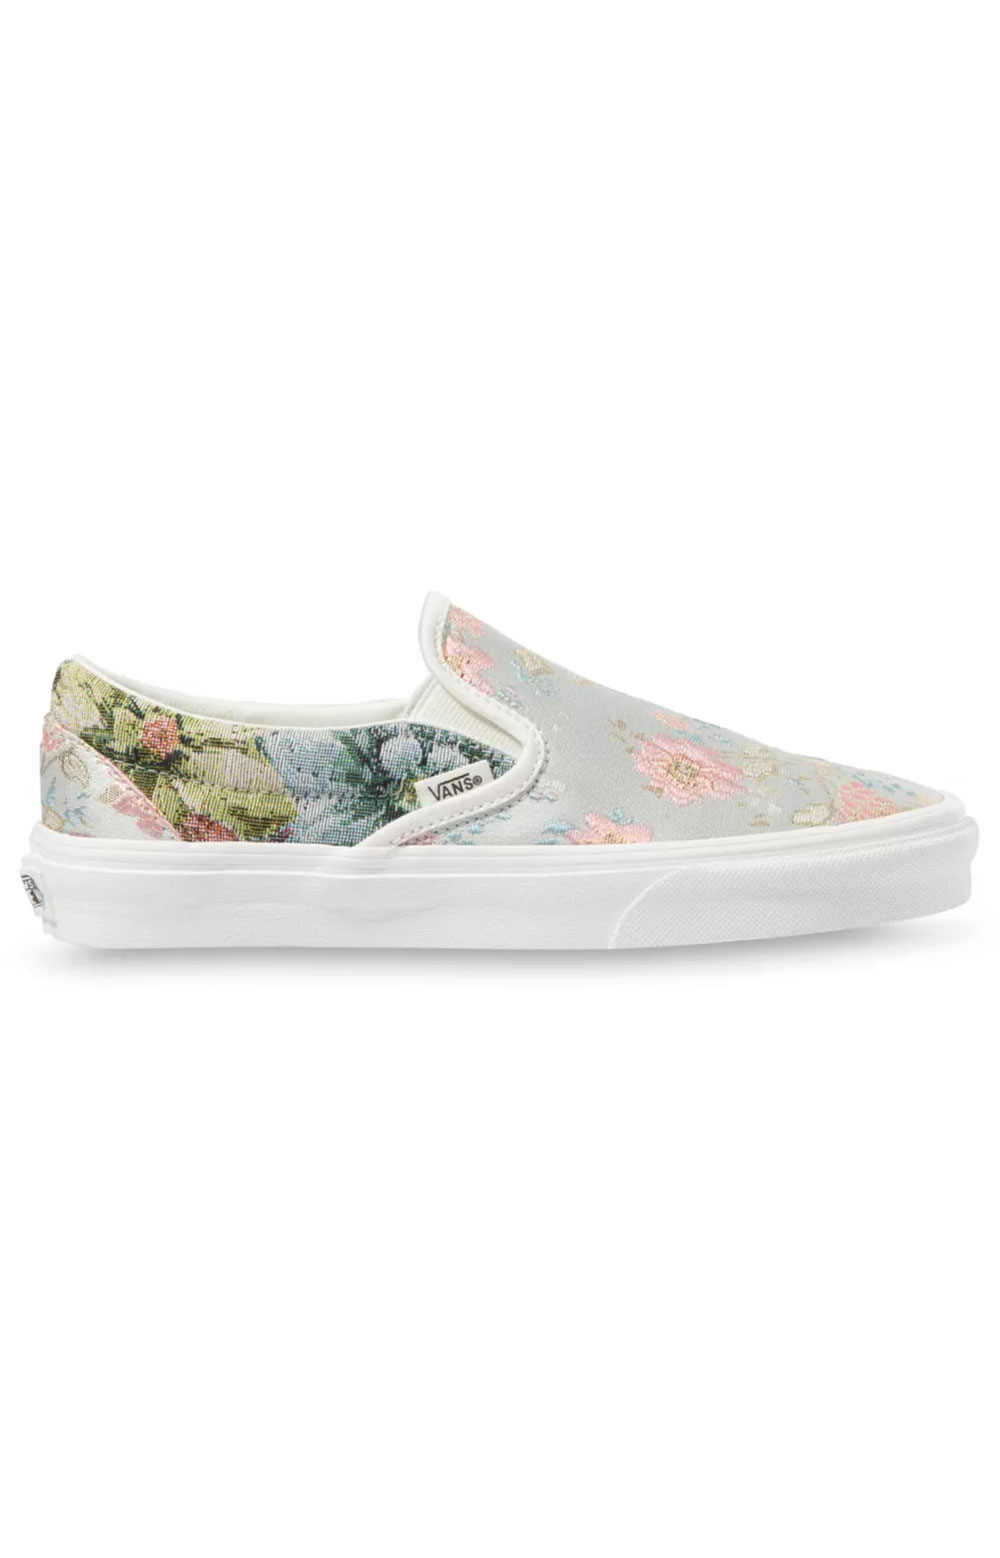 (U382PZ) Tapestry Classic Slip-On Shoes - Multi